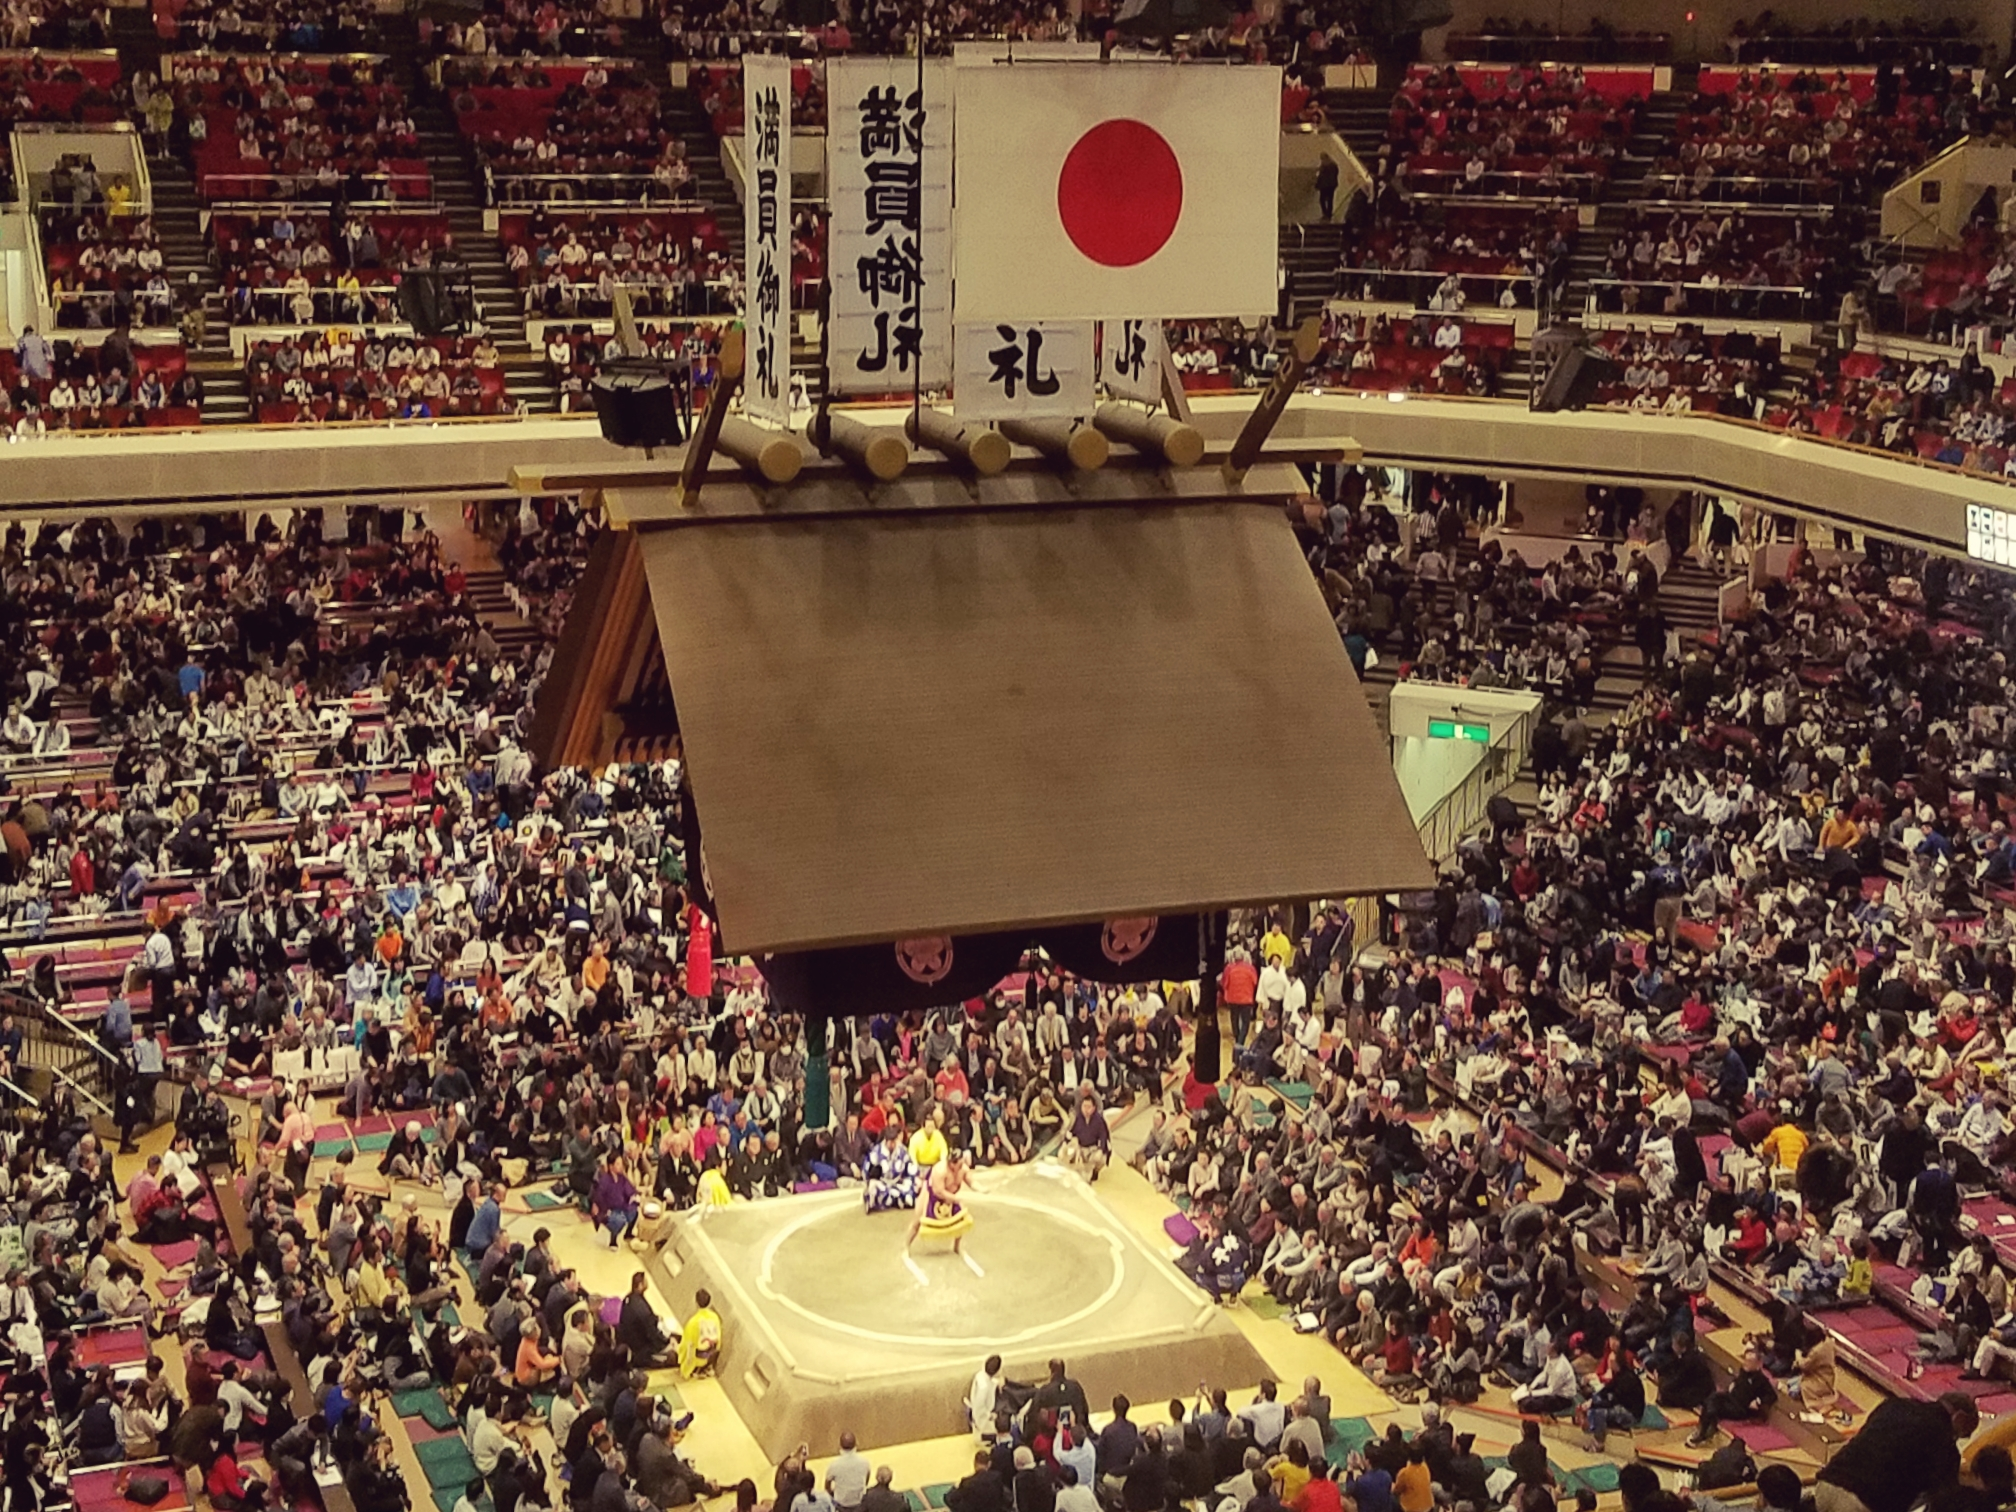 Sumo wrestler performing the bow dance